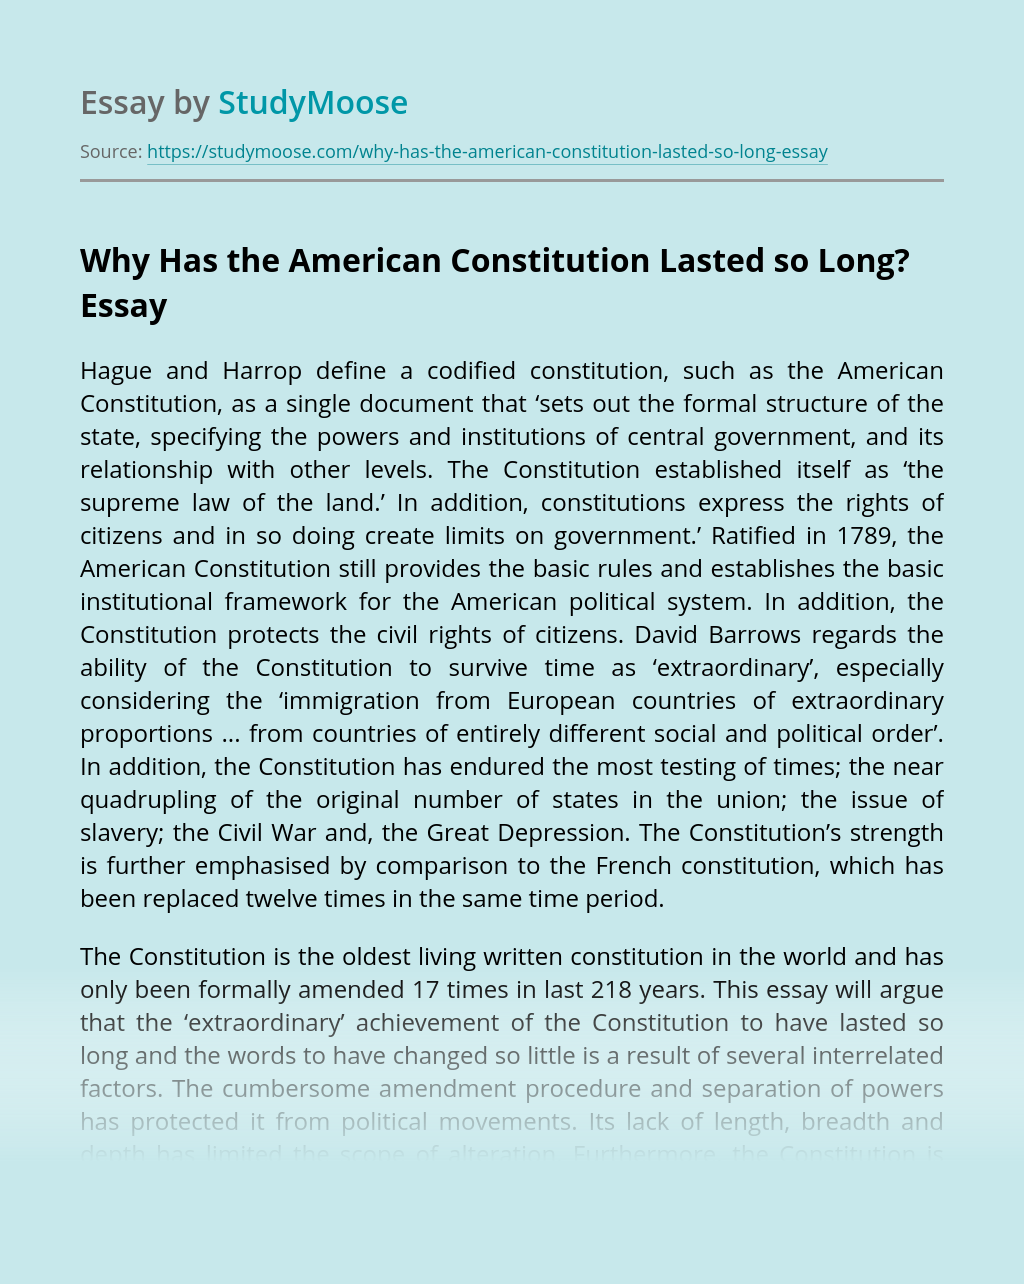 Why Has the American Constitution Lasted so Long?